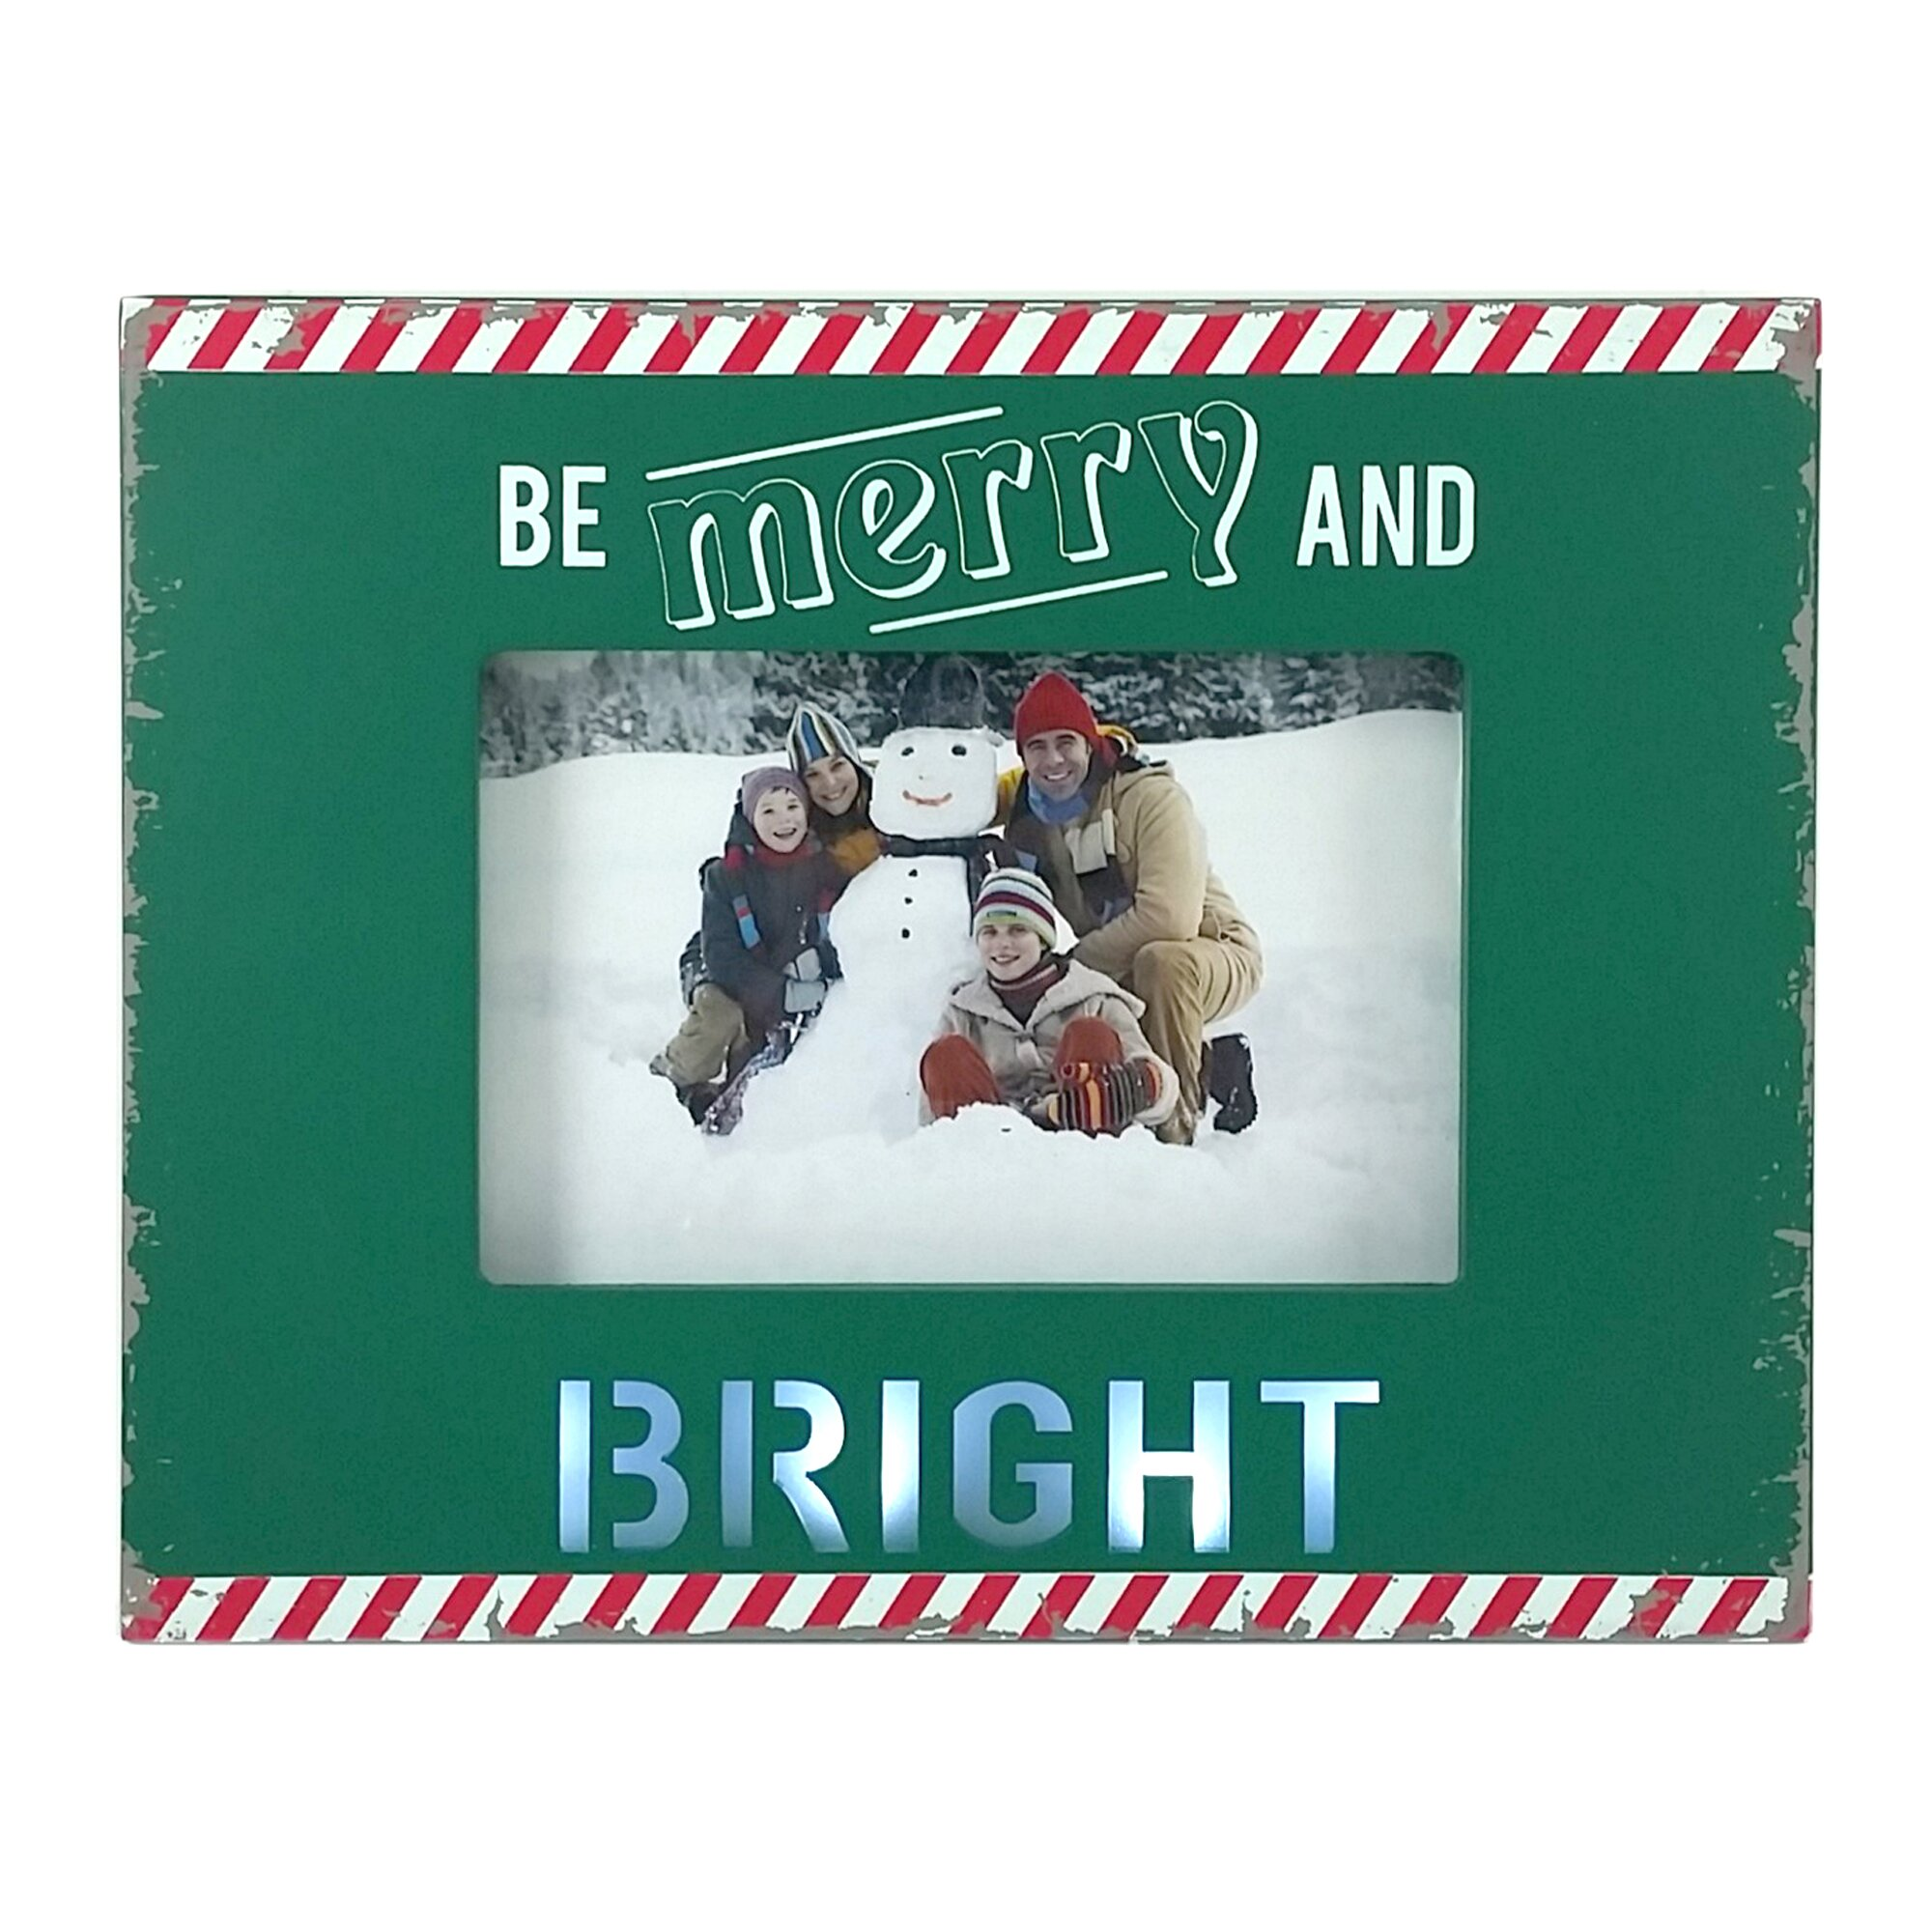 Https Www Wayfair Com Thompson Merry And Bright Picture Frame F55219164 Fhk1863 Html